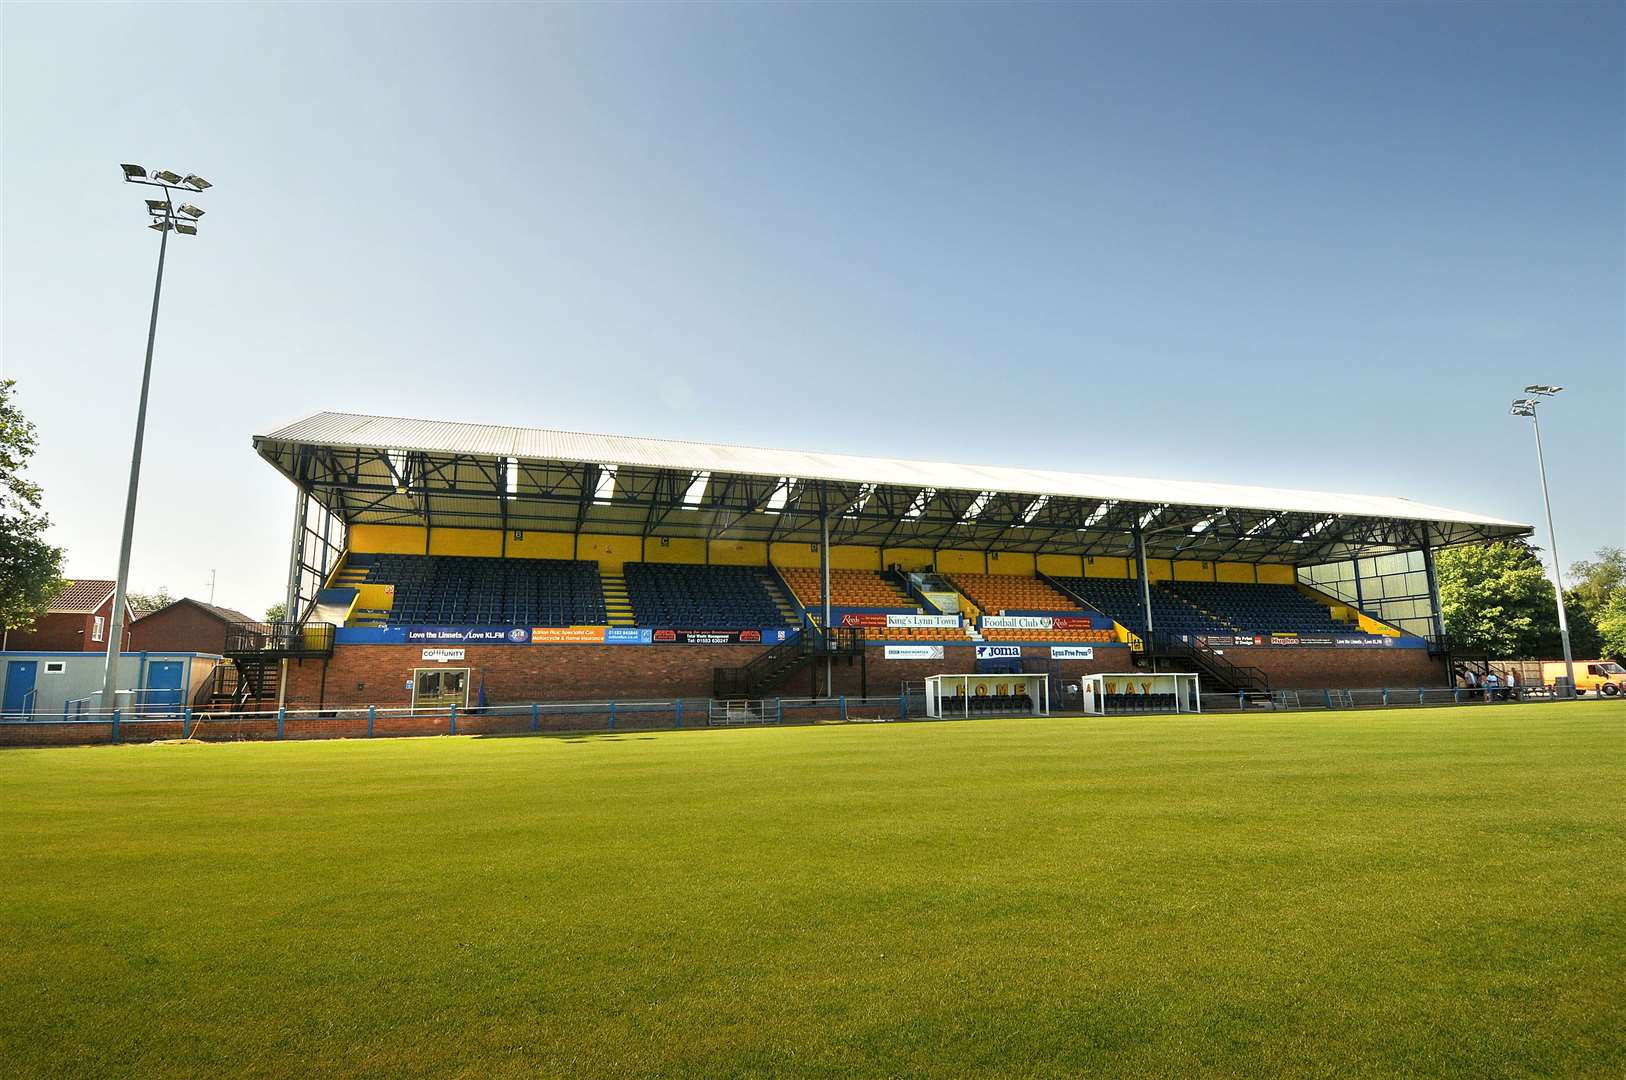 The Walks Stadium, where today's drop-in event is taking place